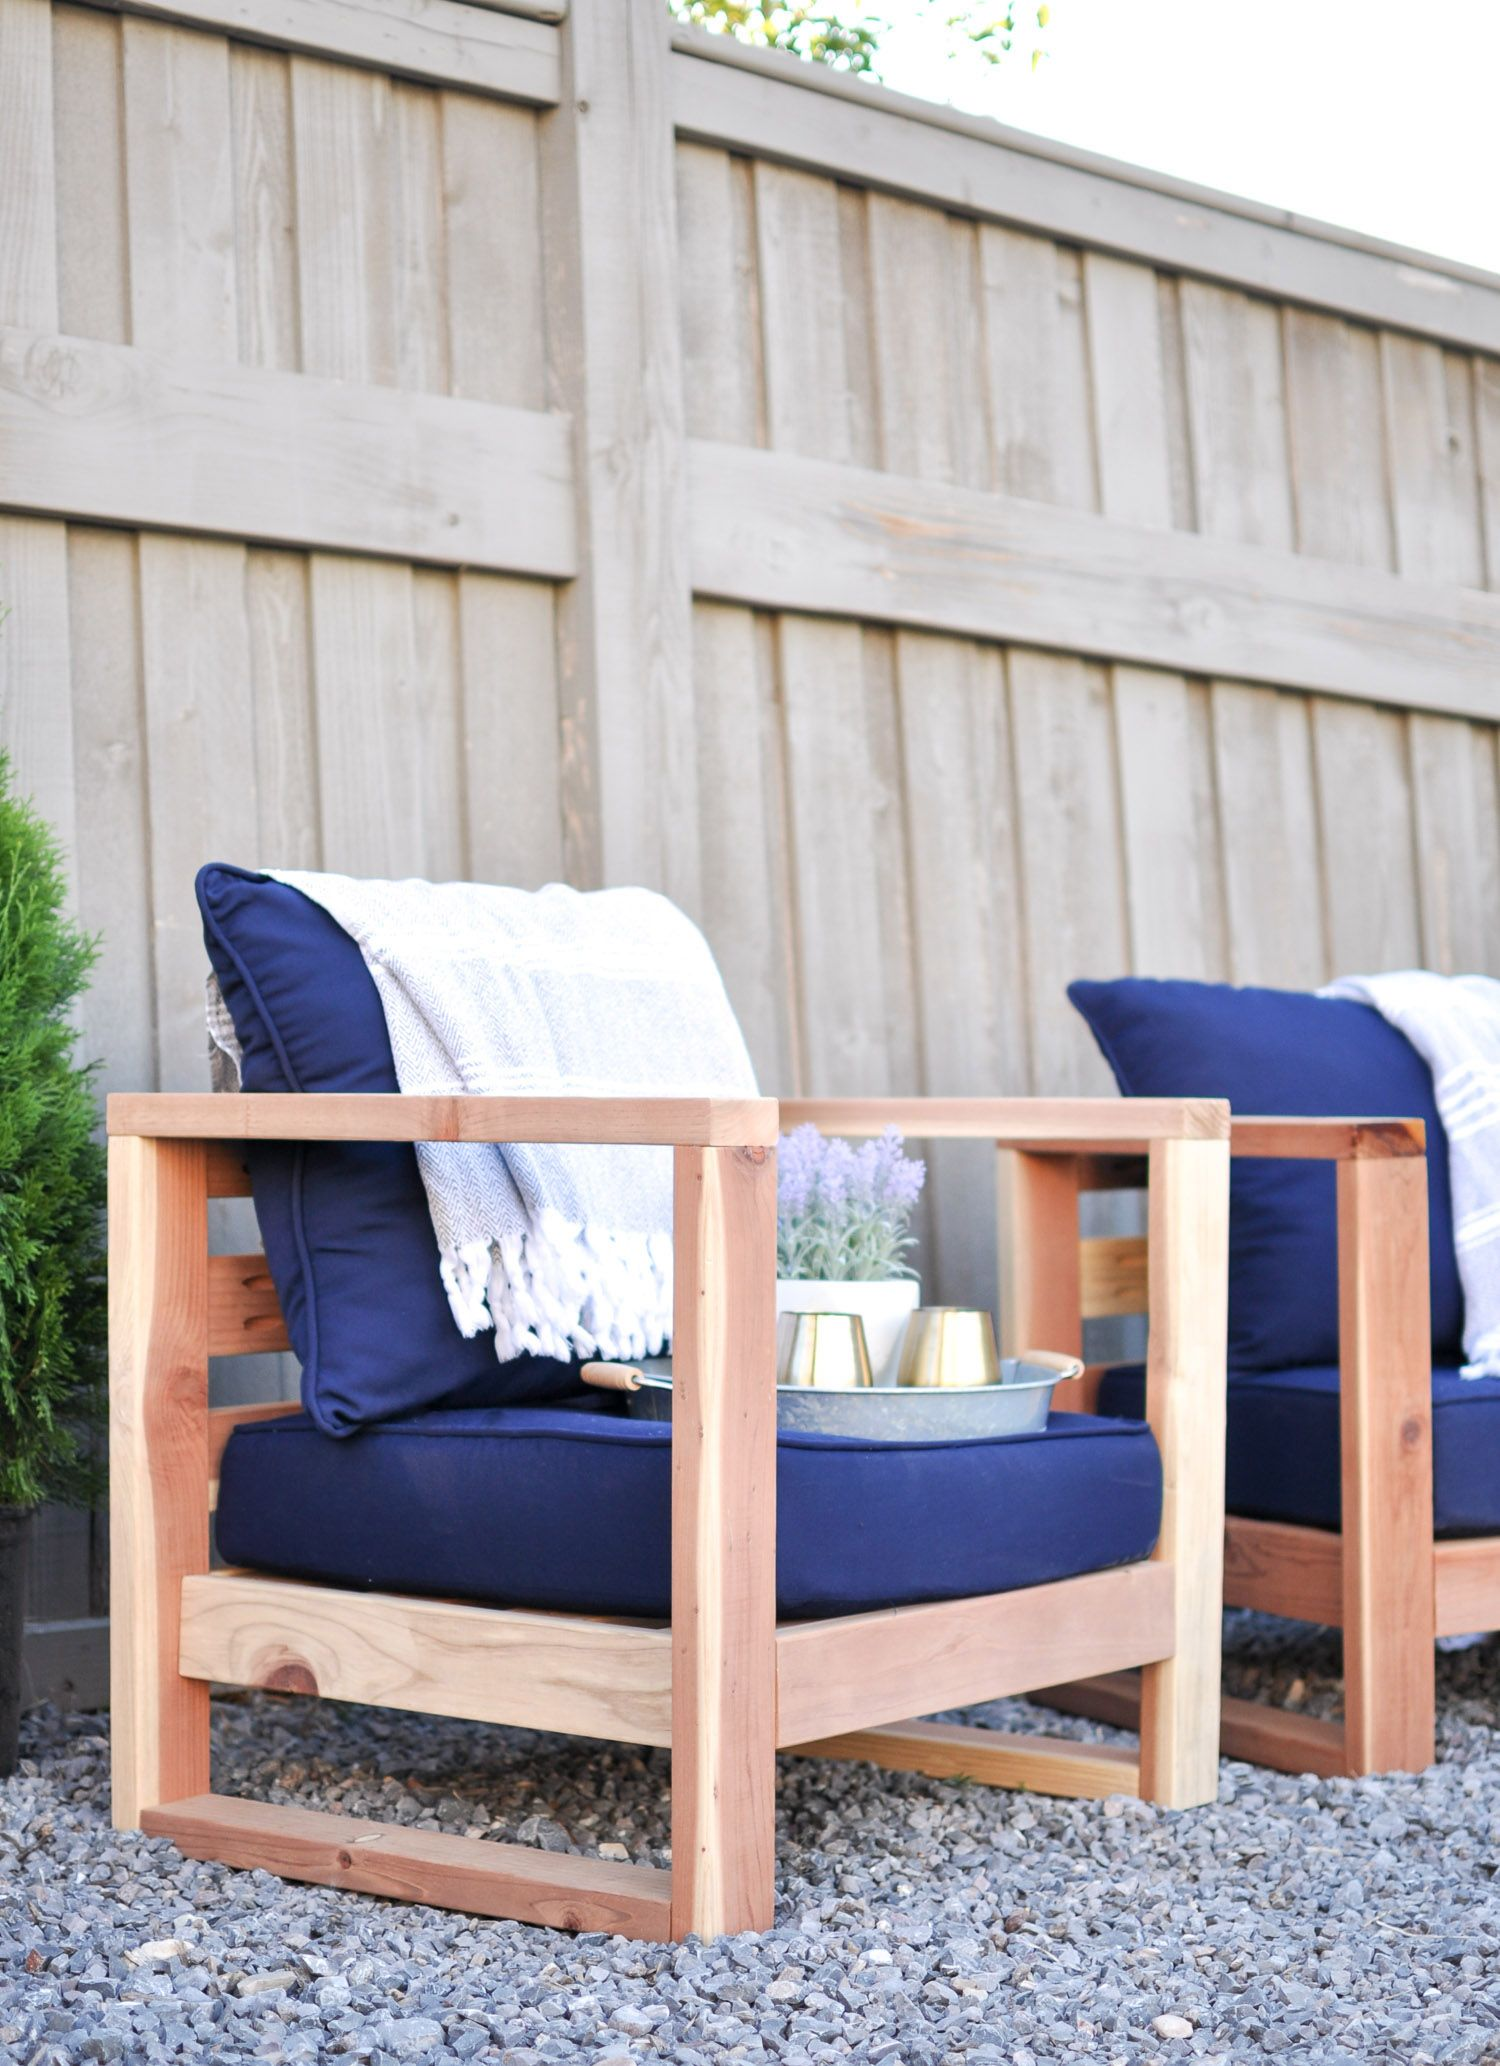 Diy Modern Outdoor Chair Free Plans Cherished Bliss Modern Outdoor Chairs Outdoor Chairs Diy Garden Furniture